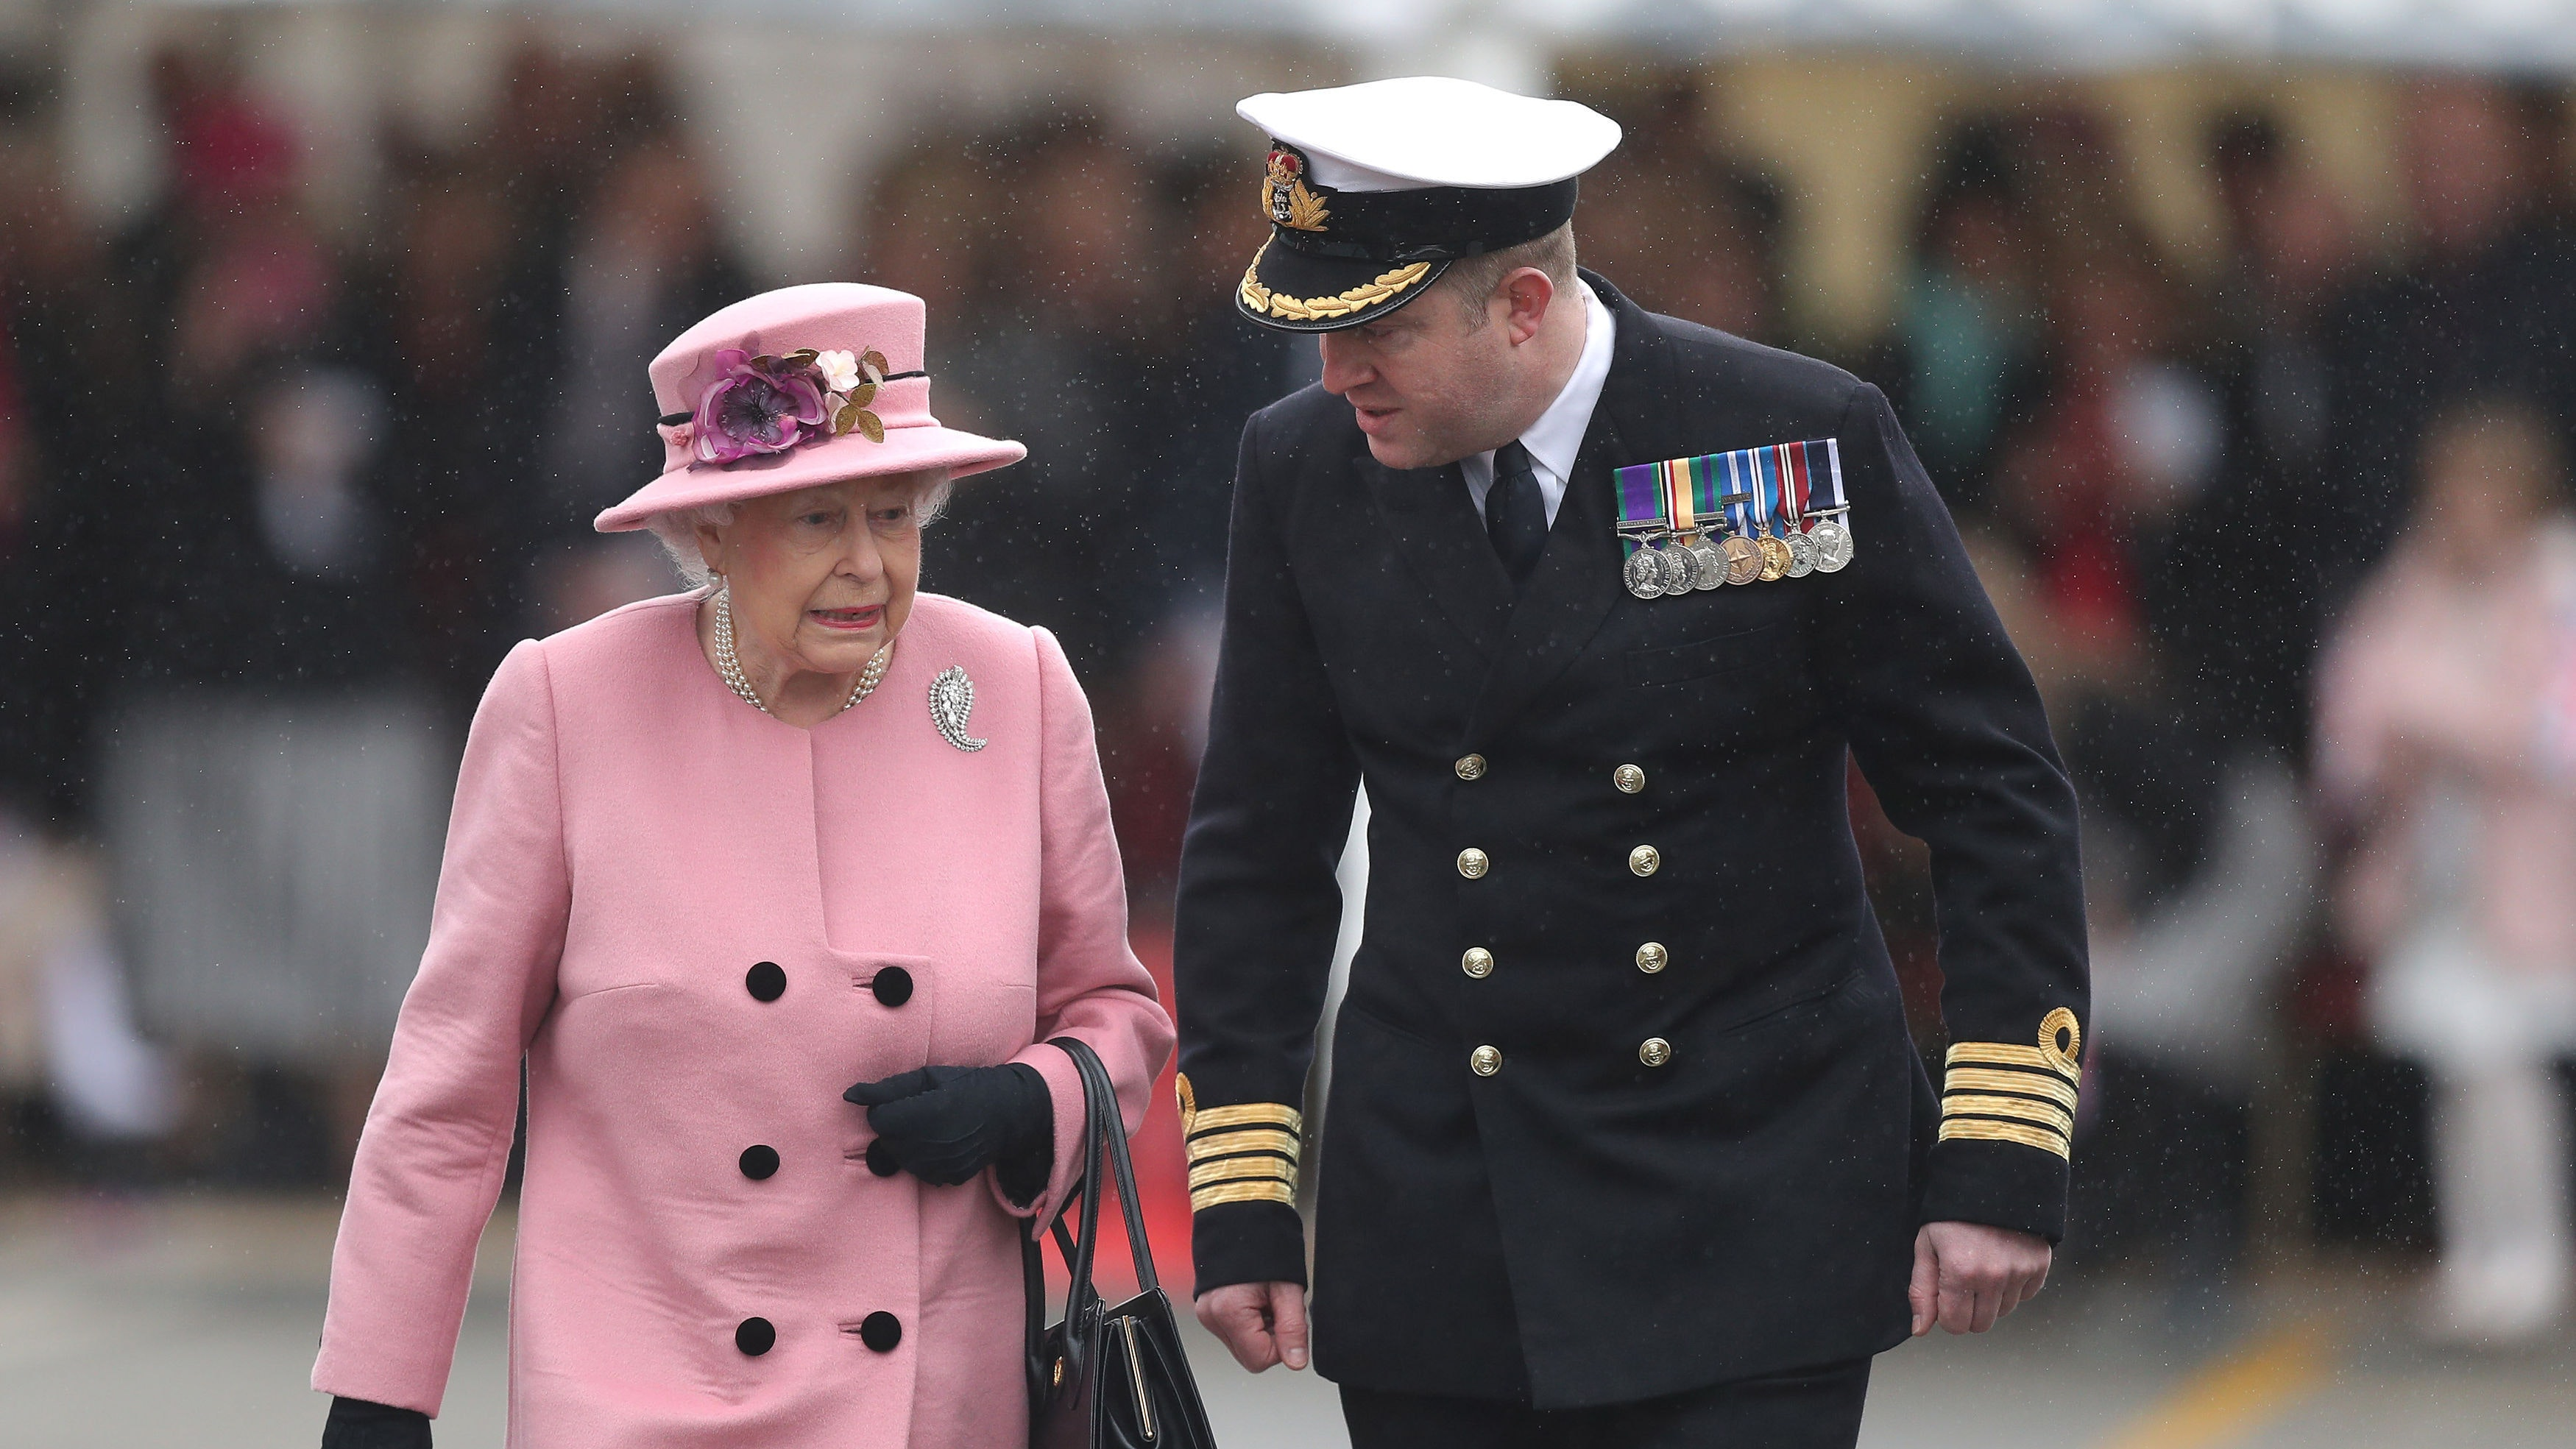 The Queen pays tribute to HMS Ocean at decommissioning ceremony